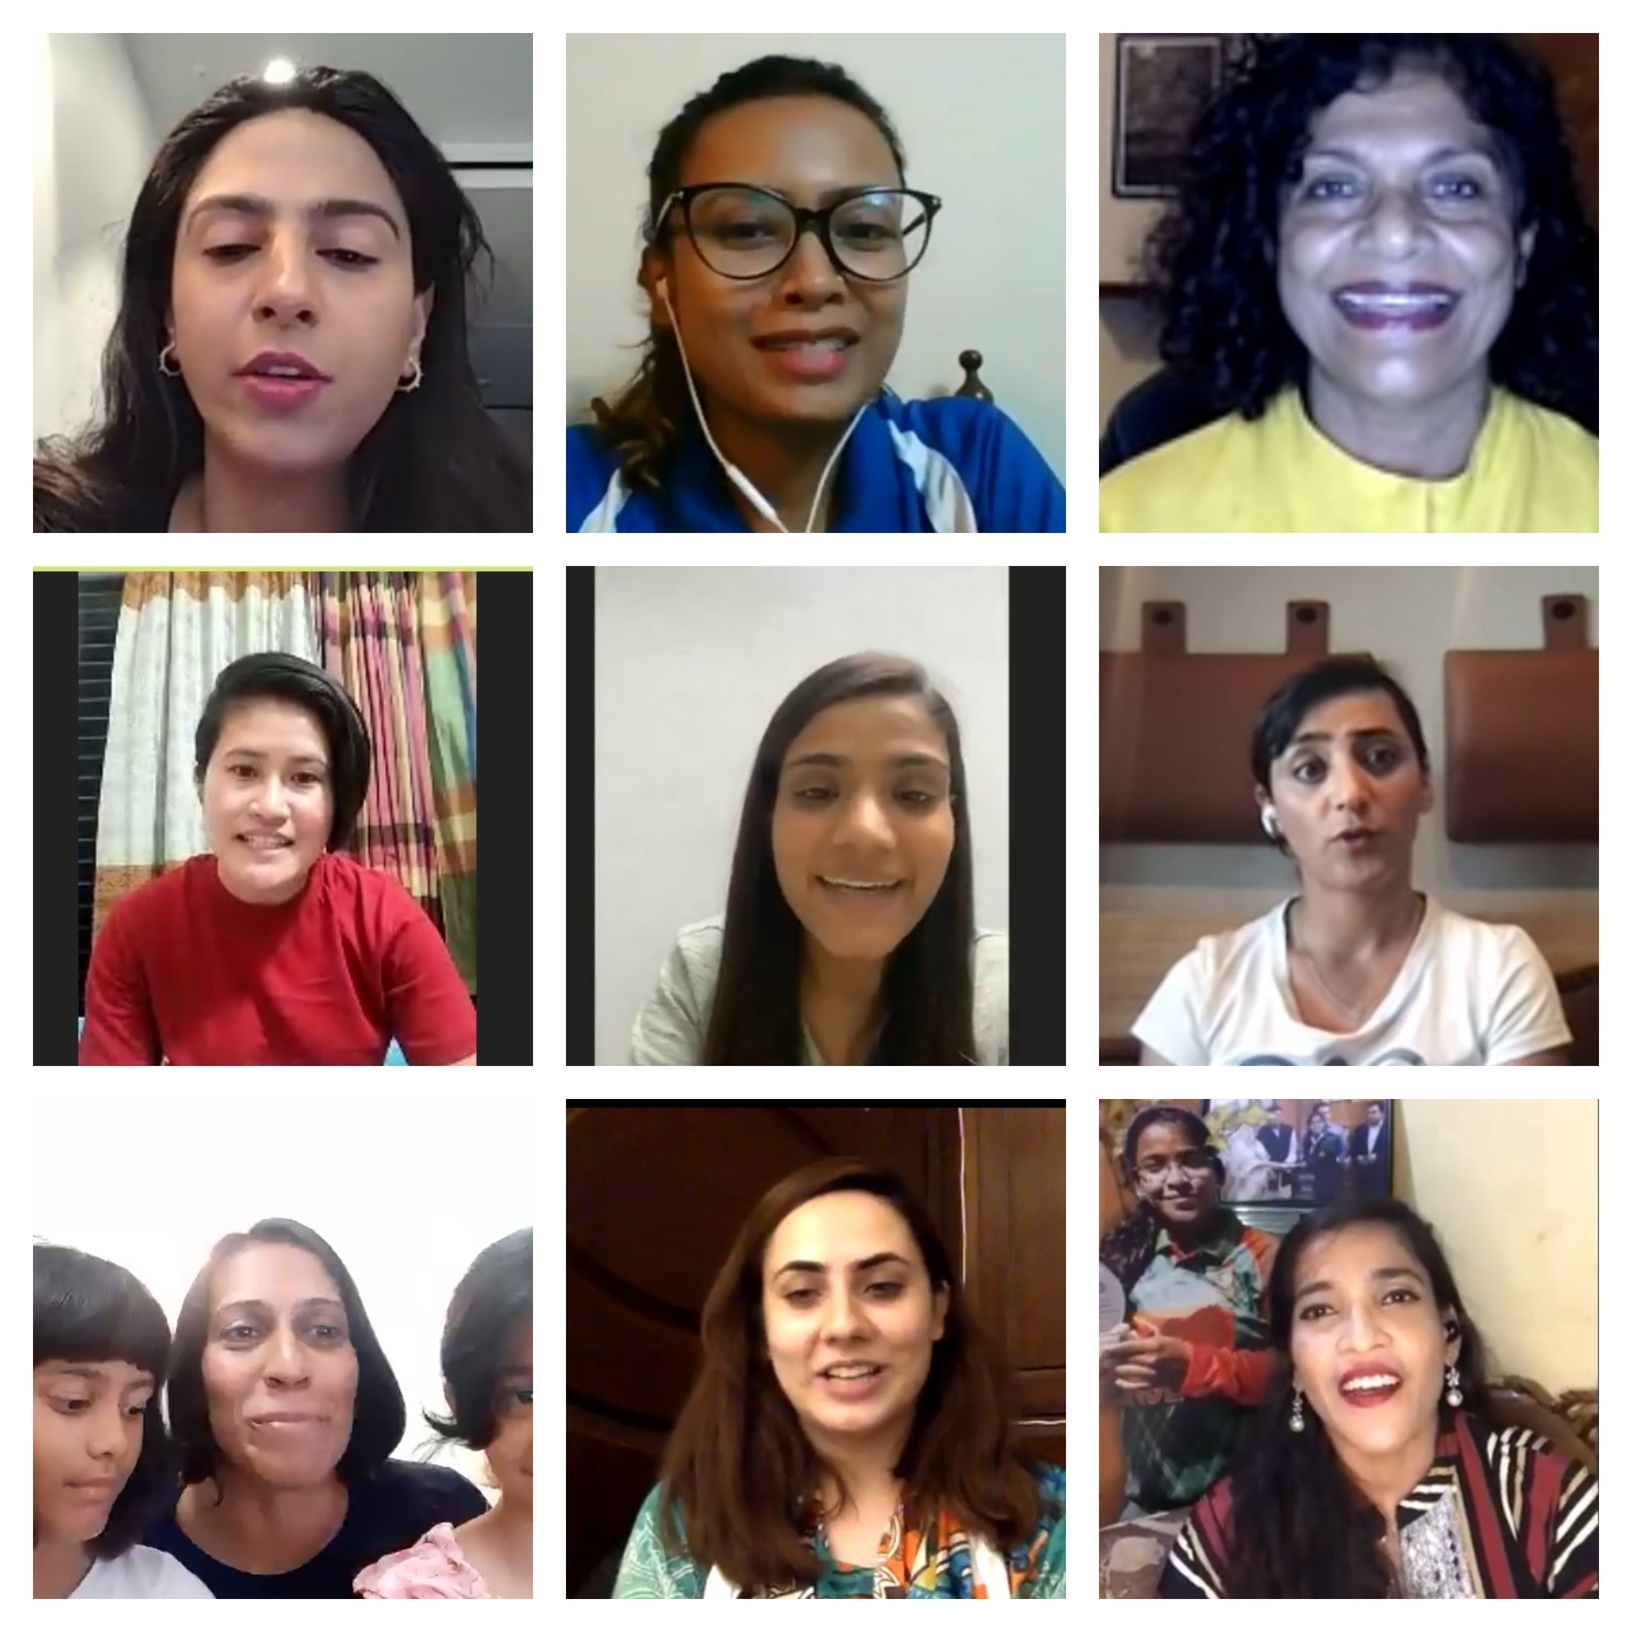 Image collage showing pictures of different athletes from South Asia, including [top left]Ayesha Mansukhani,Ashreen Mridha,Caryll Tozer,Champa Chakma,Gulshan Naaz, Khalida Popal, Nisha Millet and her twin daughters, Noorena Shams, andRuhmana Ahmed. Photo: Screengrab via Zoom captured by the author.